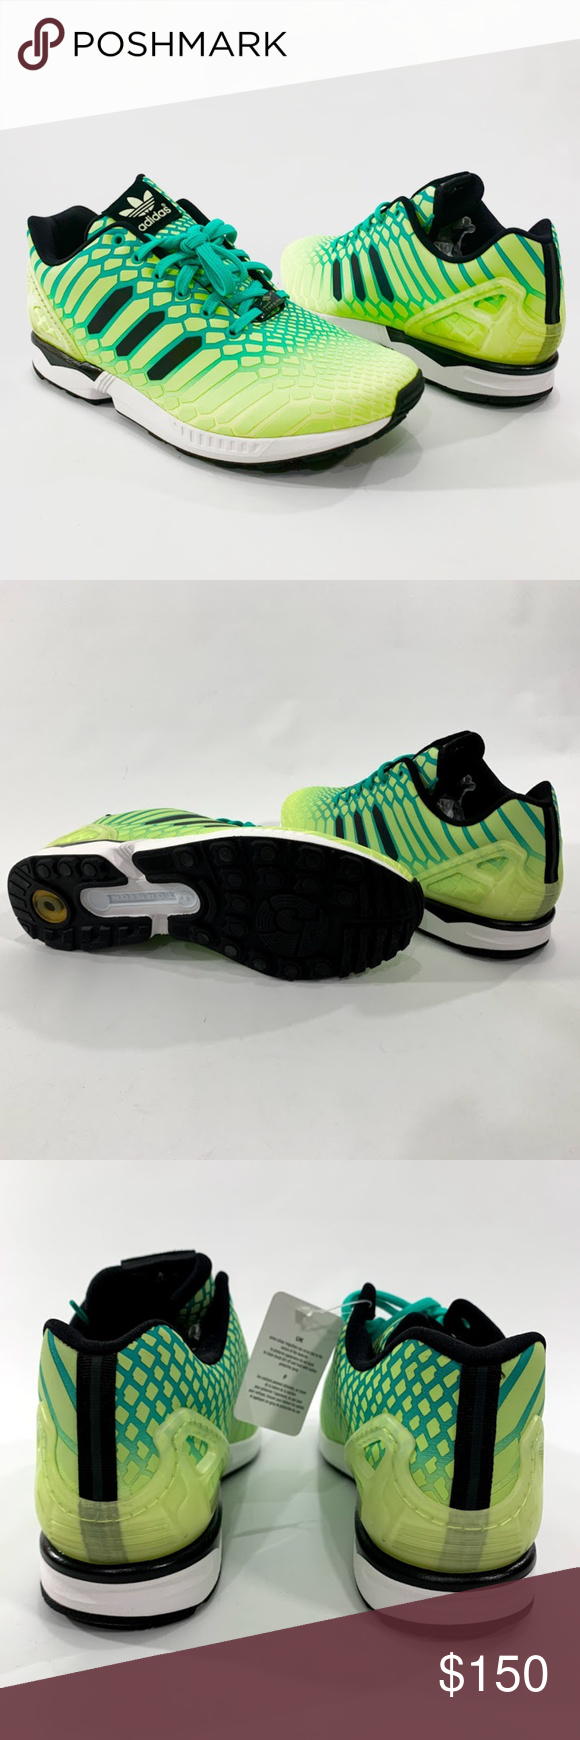 dfa544dde3a23 Adidas ZX Flux XENO Men s Reflective Running Shoes ADIDAS adidas ZX Flux  AQ8212 Men s Running Shoes Size 12 Green Black Low top Lace up New without  box ...